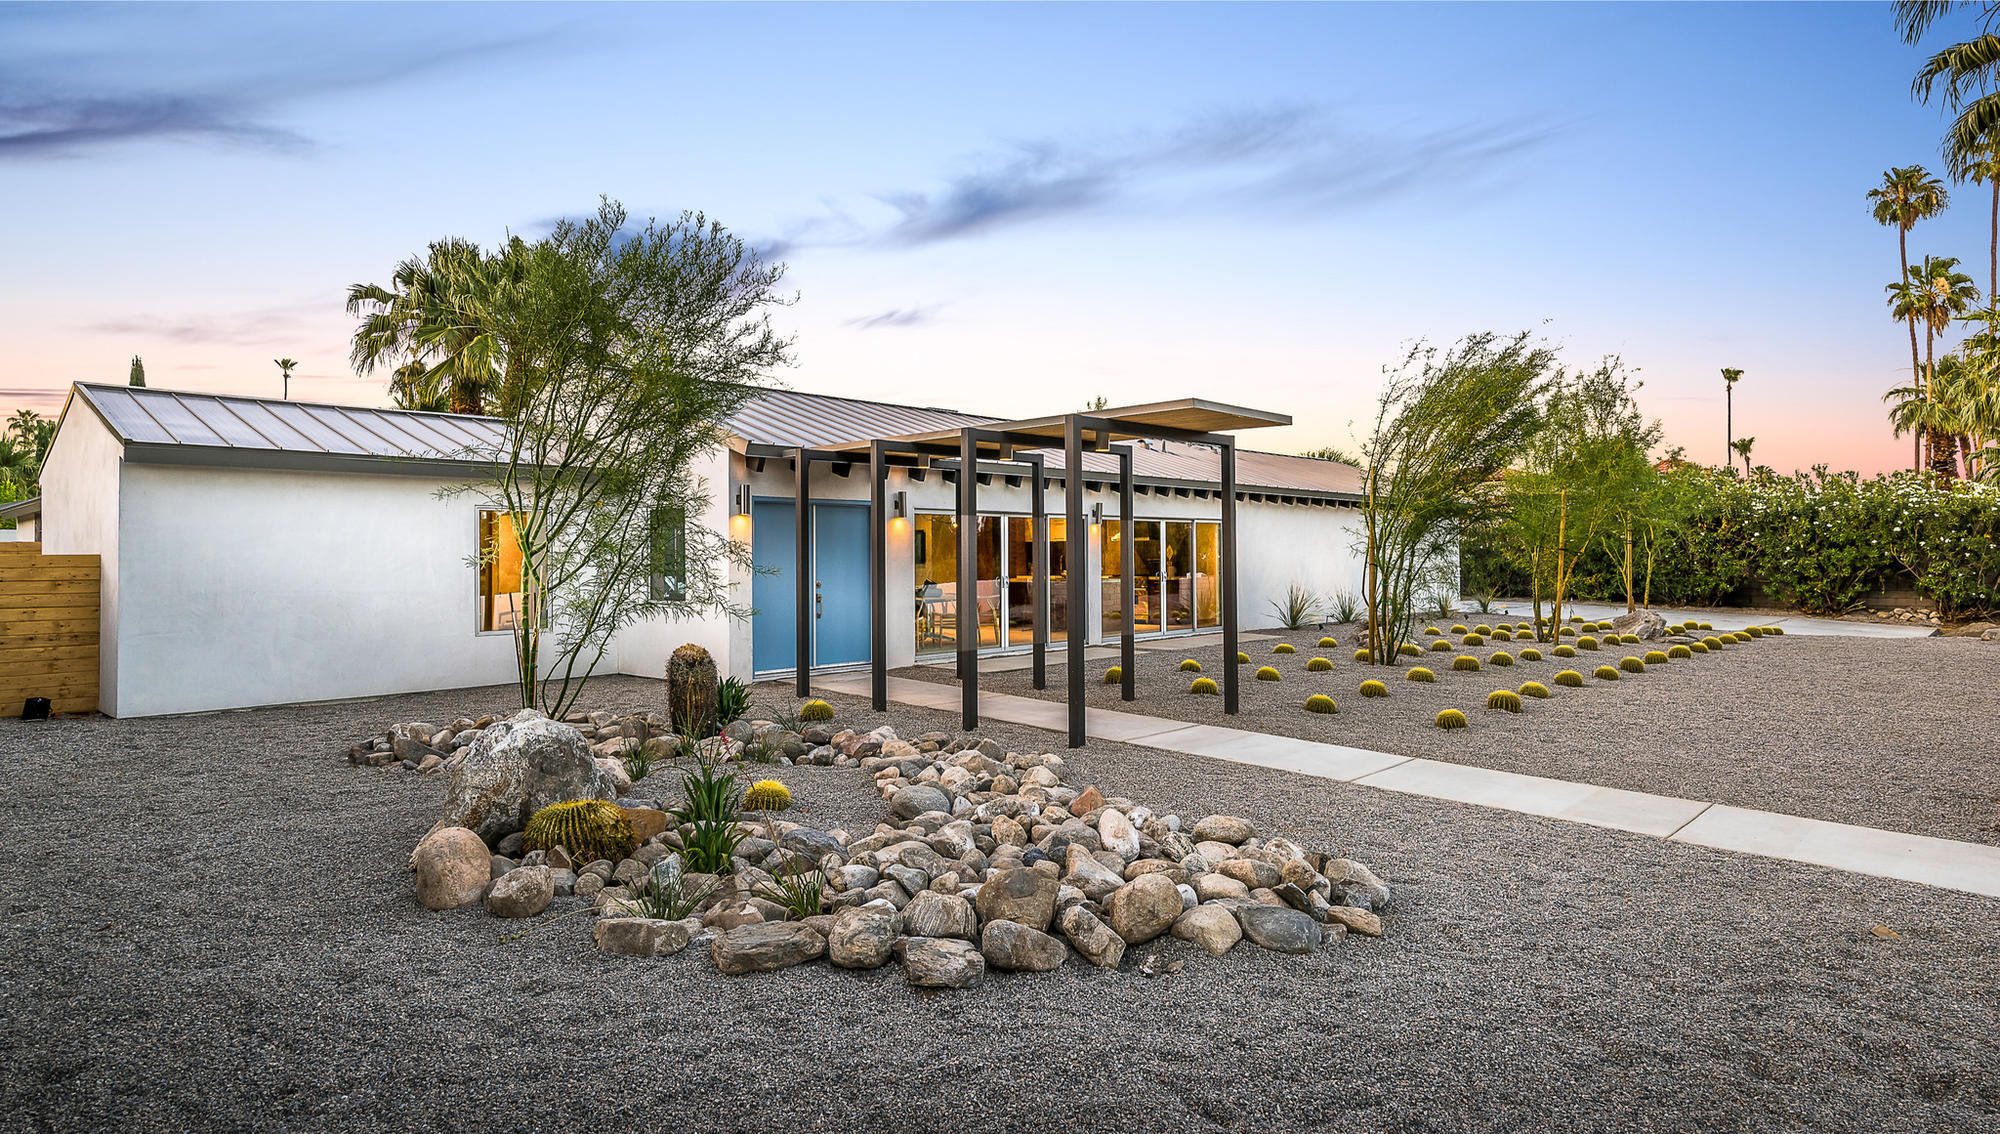 Former Palm Springs mayor's stylish residence elects for a list price of $2.4 mi...